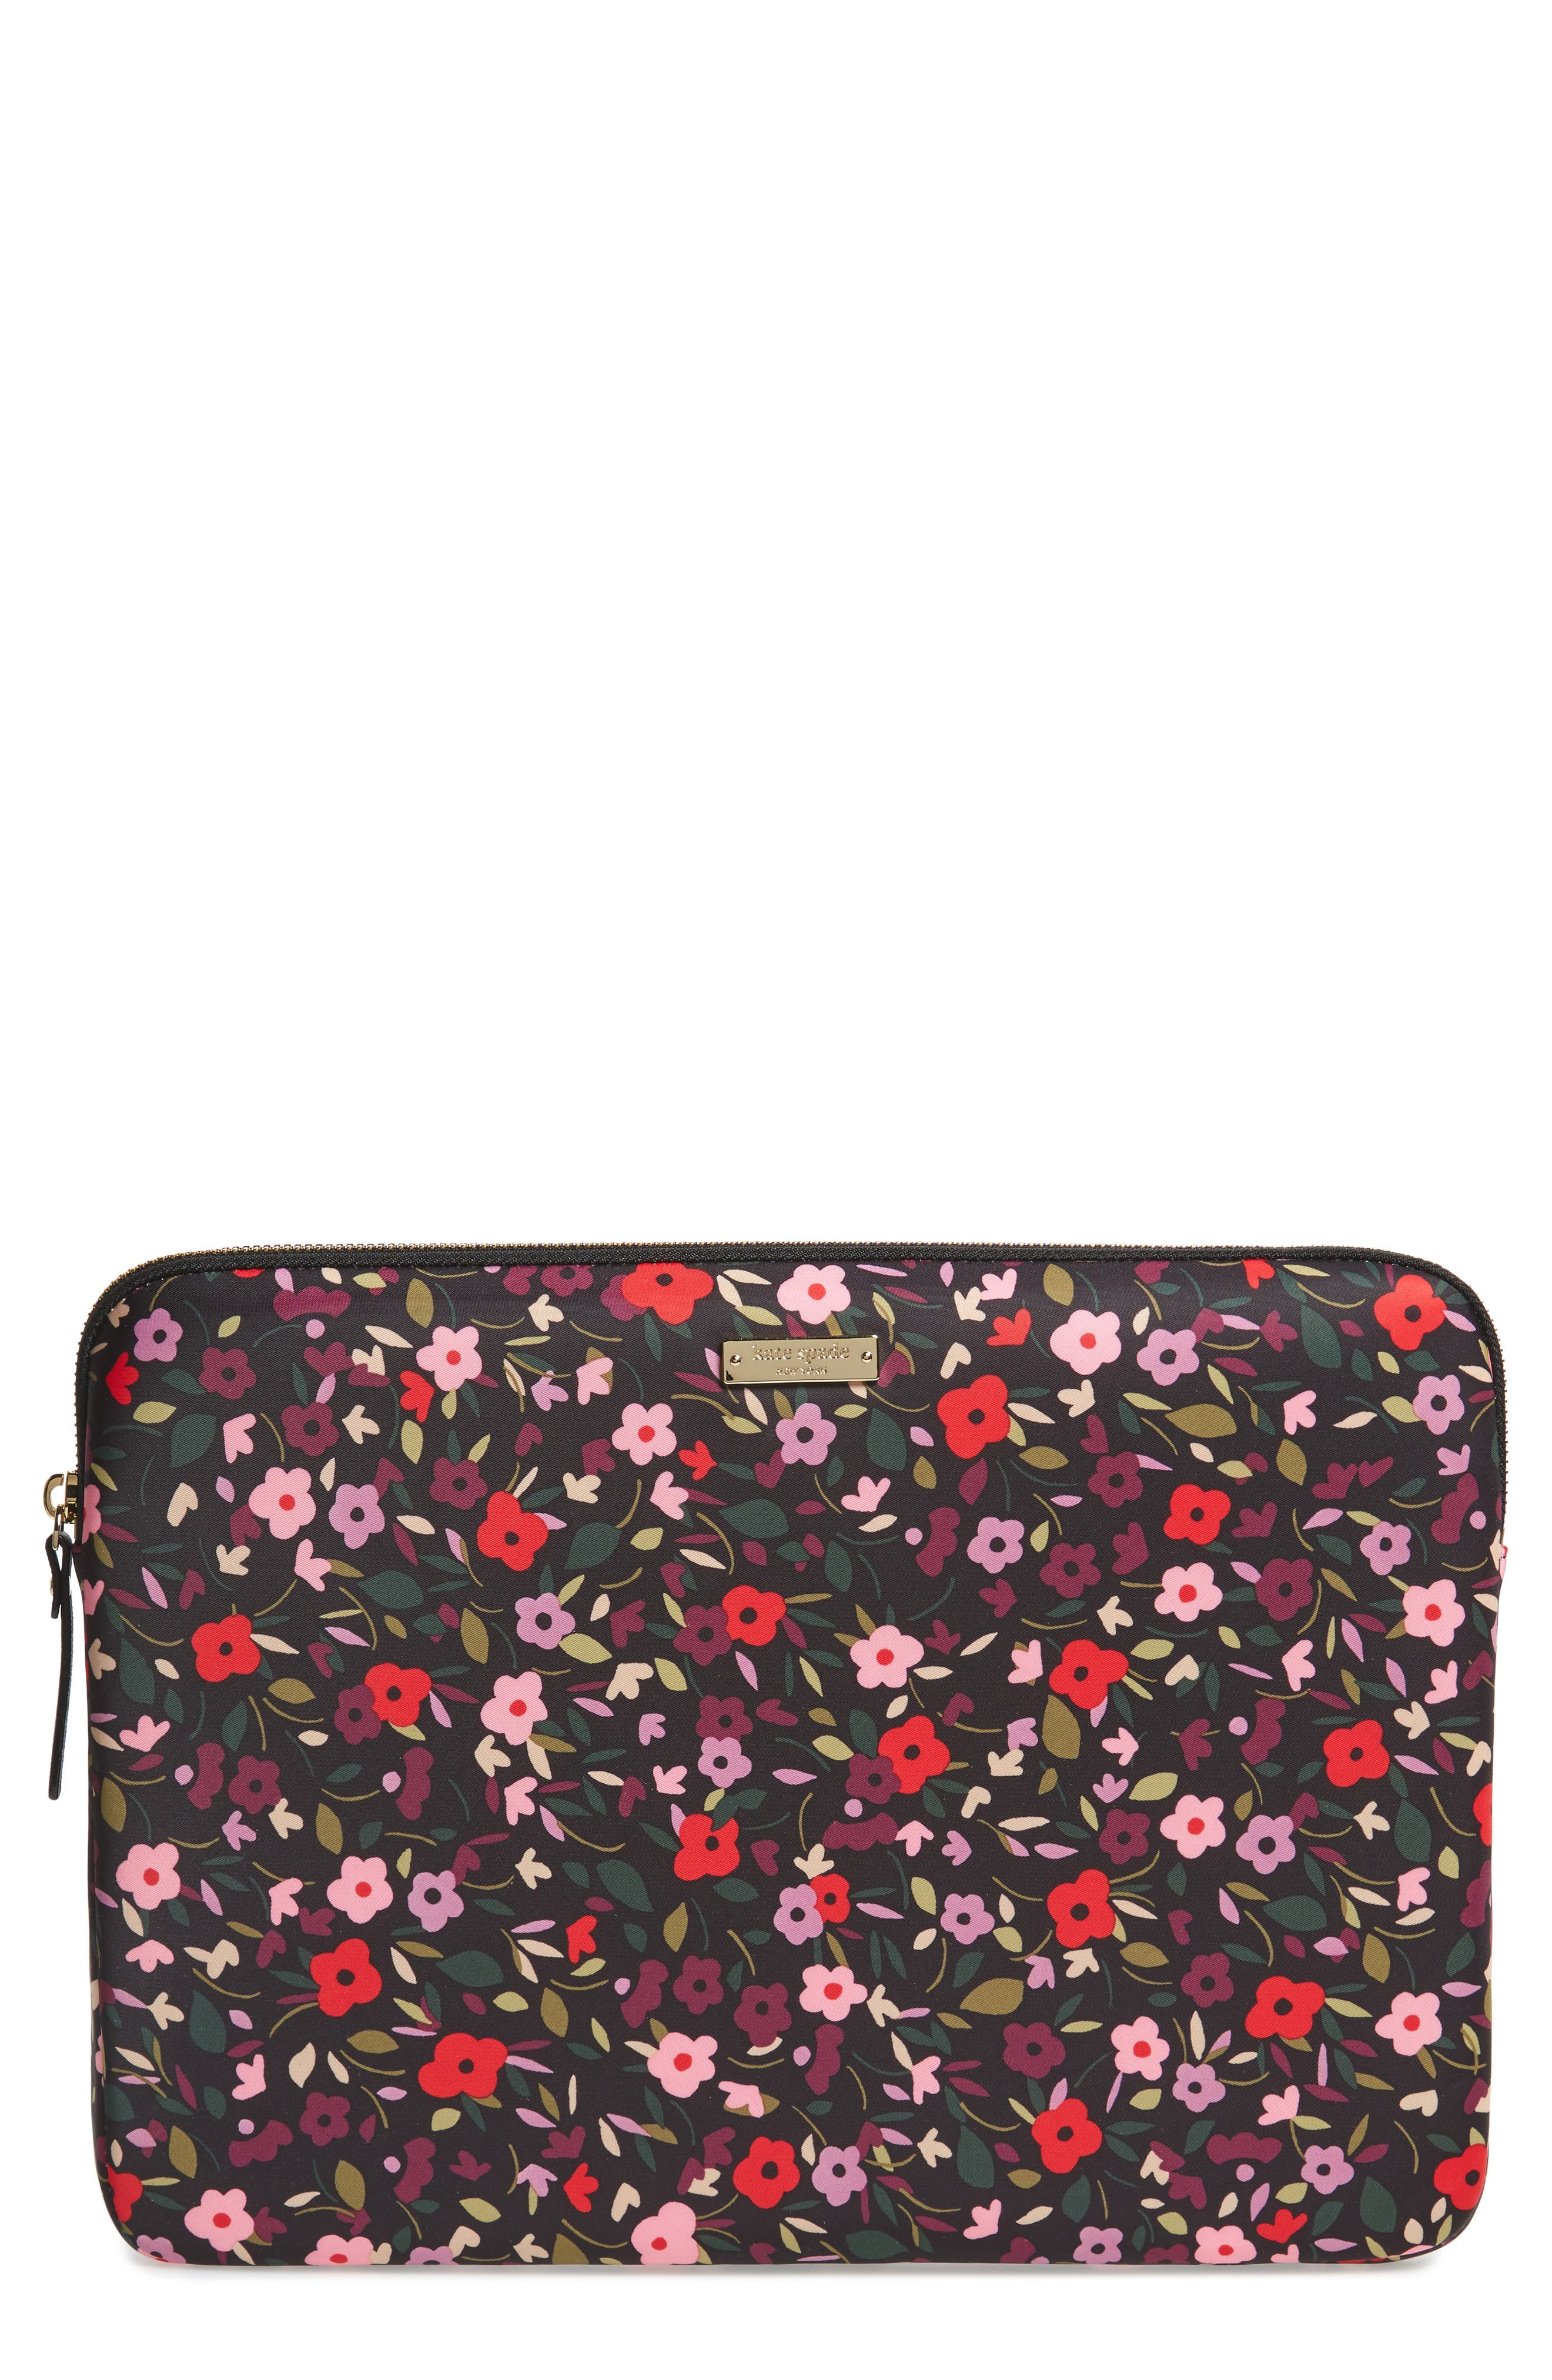 boho floral 13-inch laptop sleeve,                         Main,                         color, 002